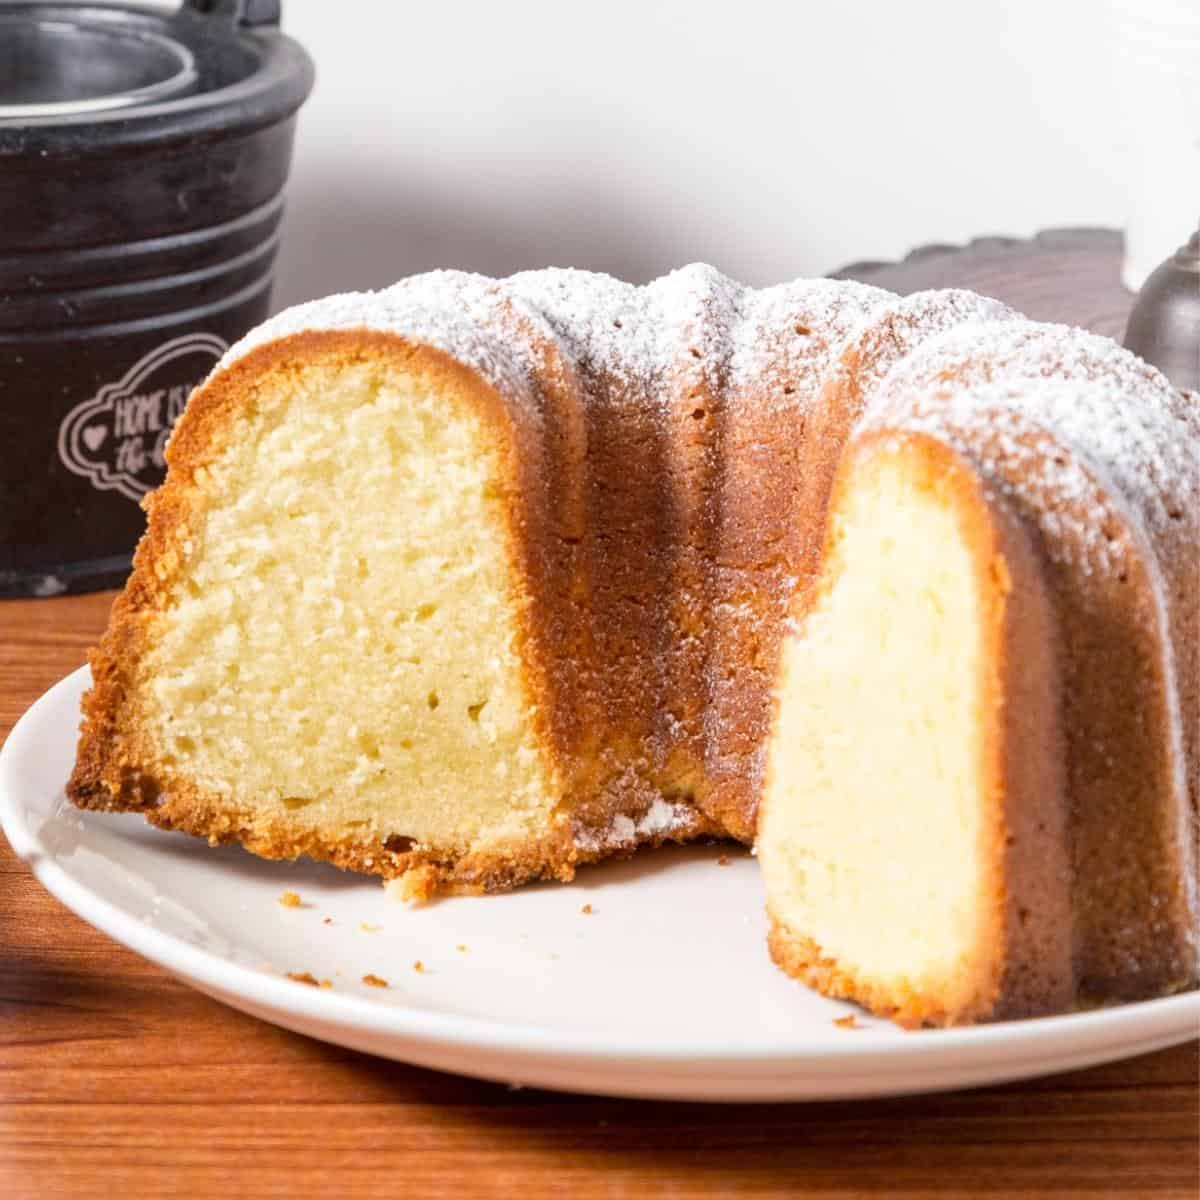 Vanilla bundt on a plate showing the sliced cake